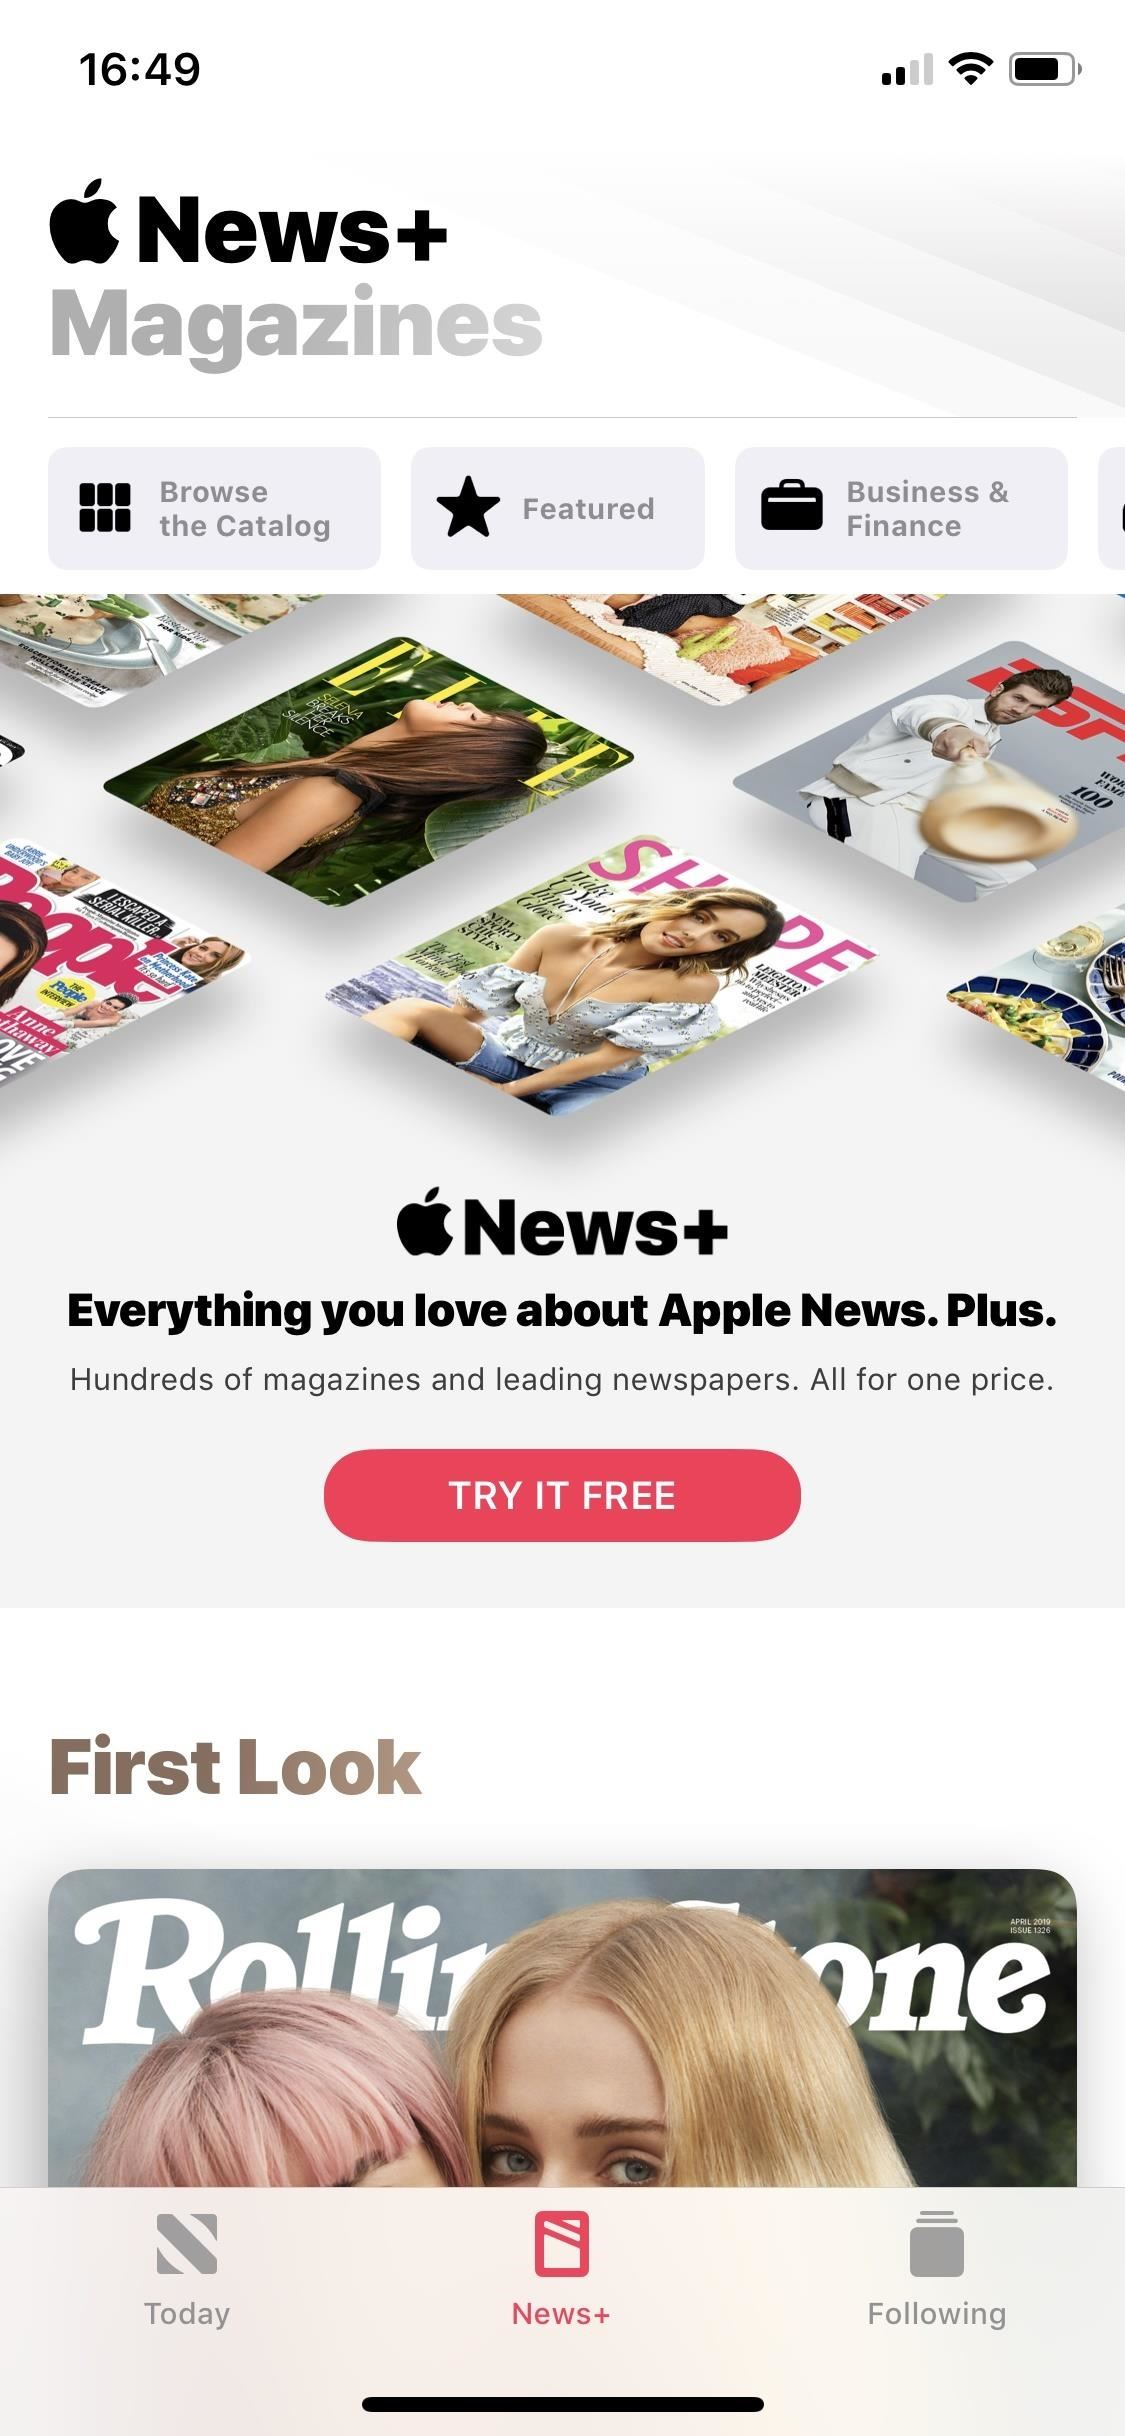 How to Cancel the Apple News+ Auto-Renewal Before Your Free Trial Ends